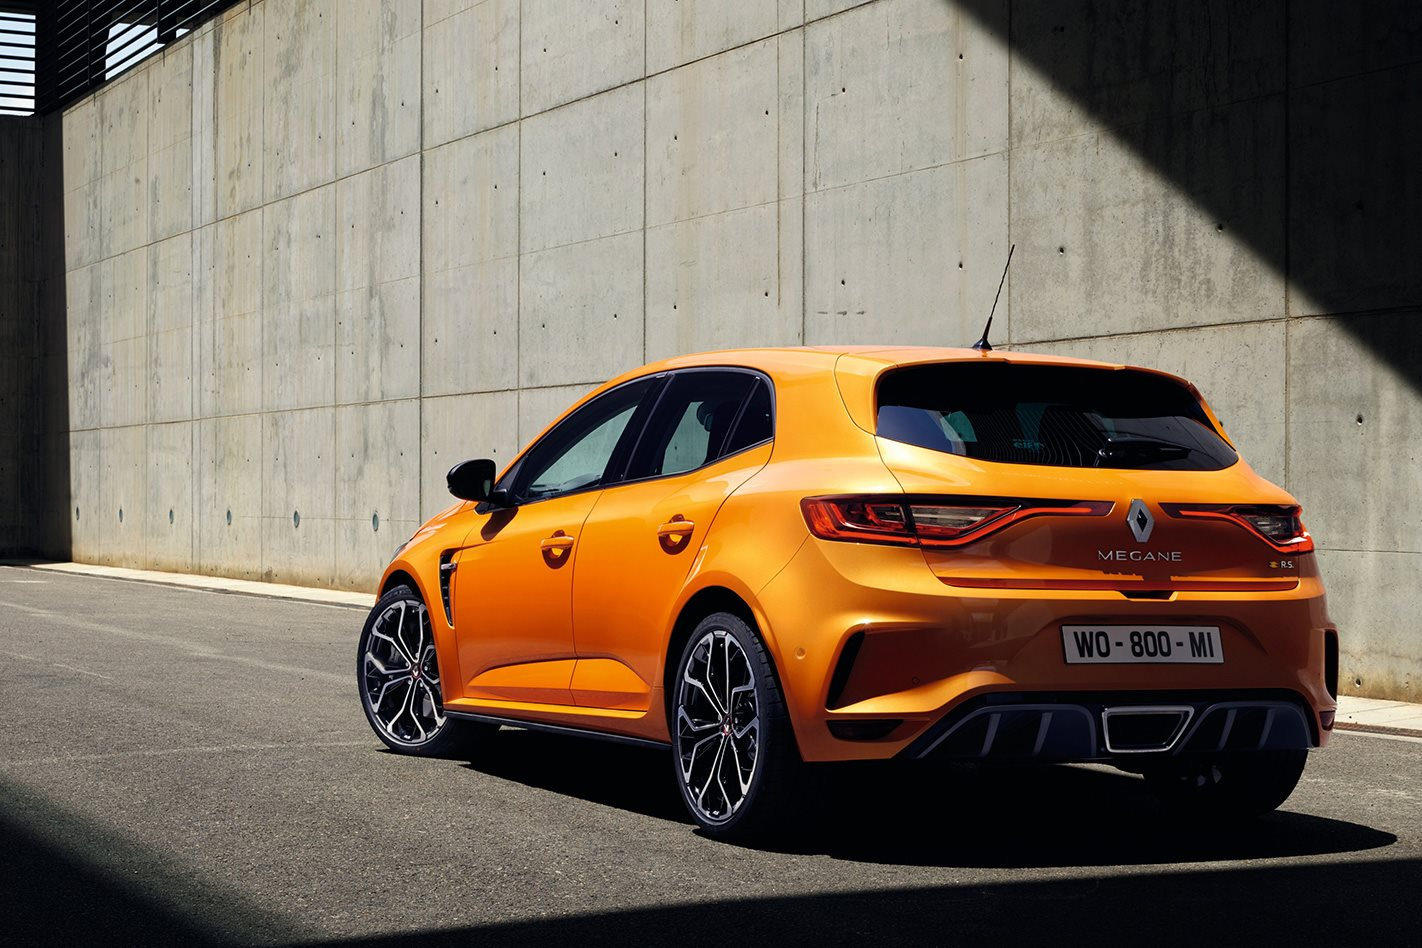 2018 renault megane rs unveiled with 205kw 1 8 litre wheels. Black Bedroom Furniture Sets. Home Design Ideas